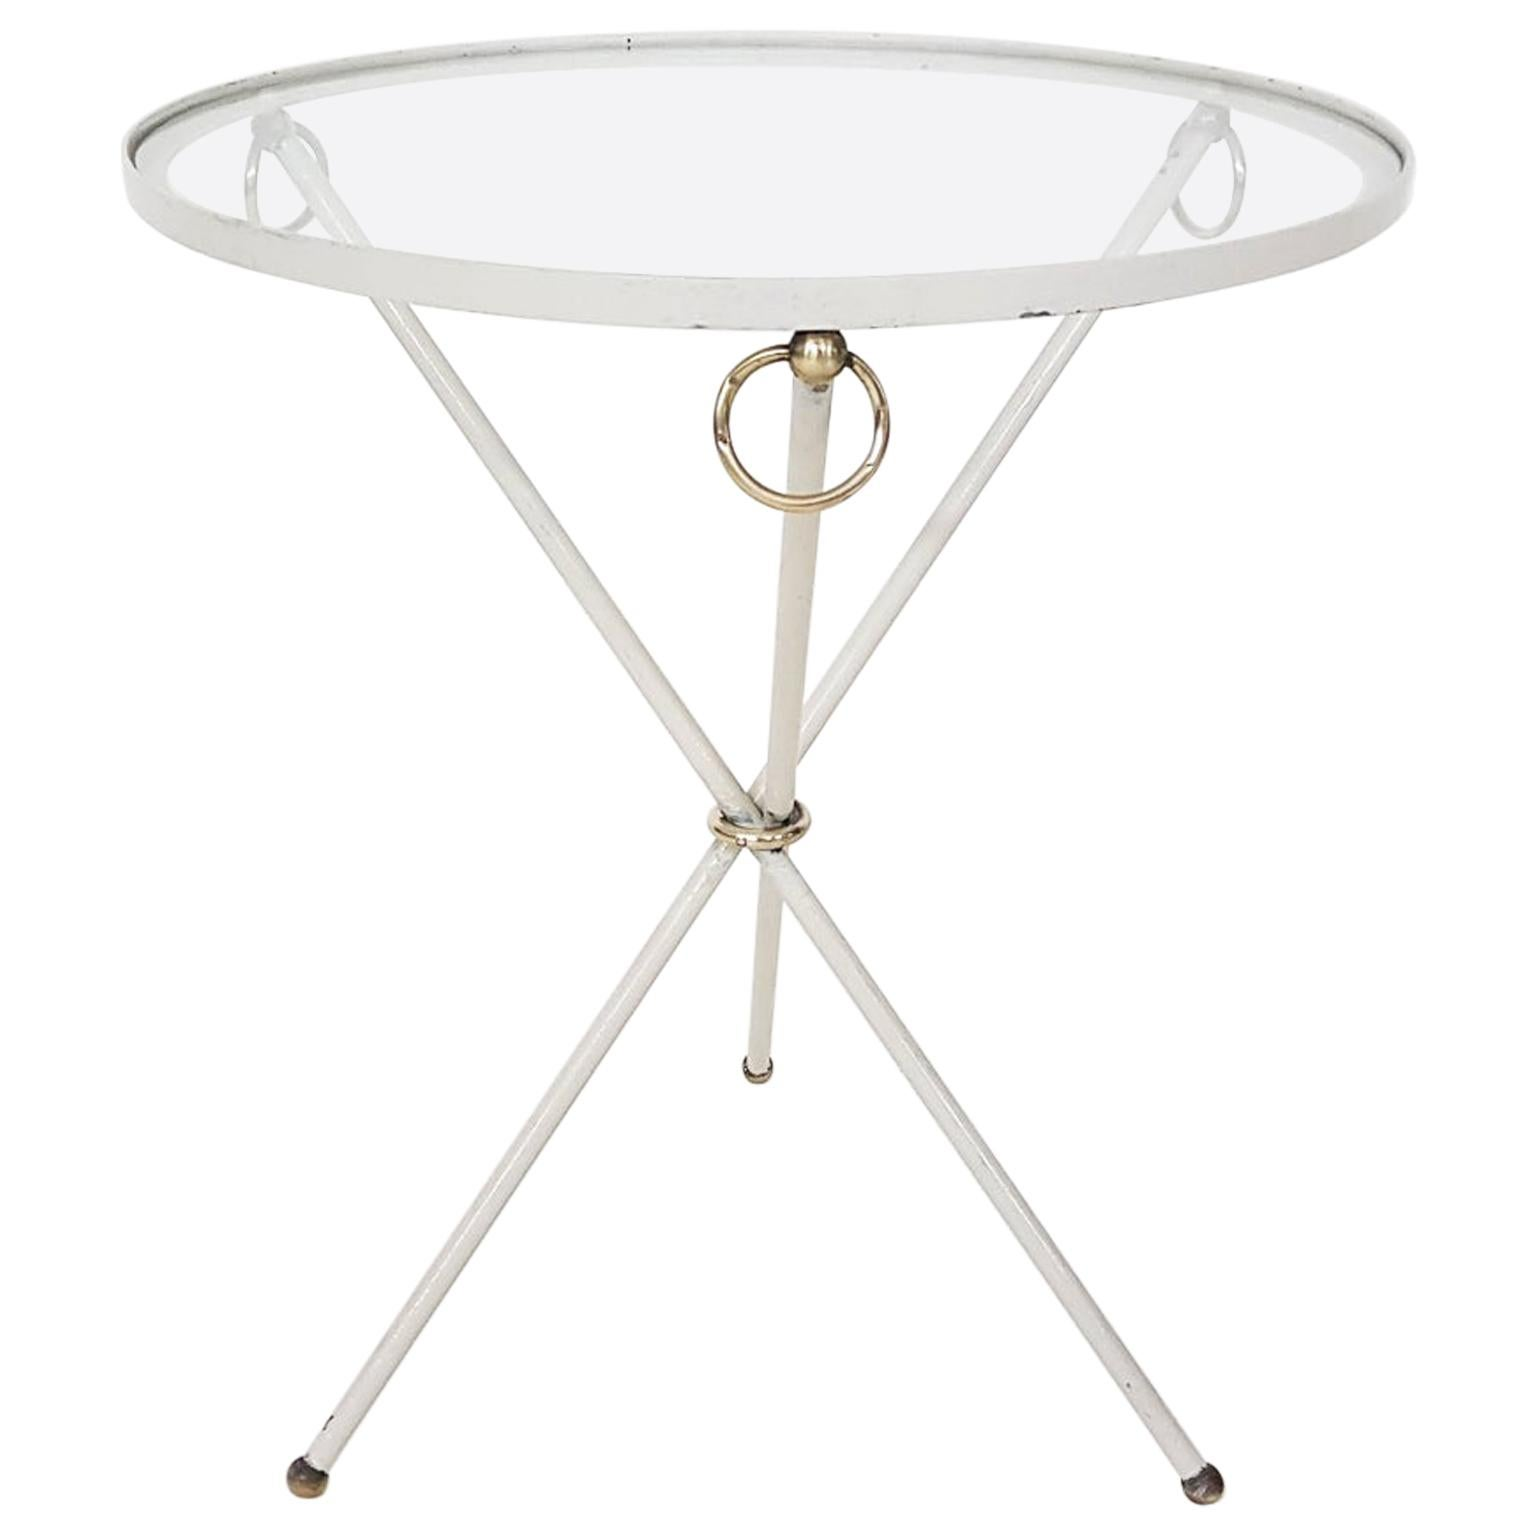 Jacques Adnet Brass and Glass Guéridon or Side Table, France, 1940s